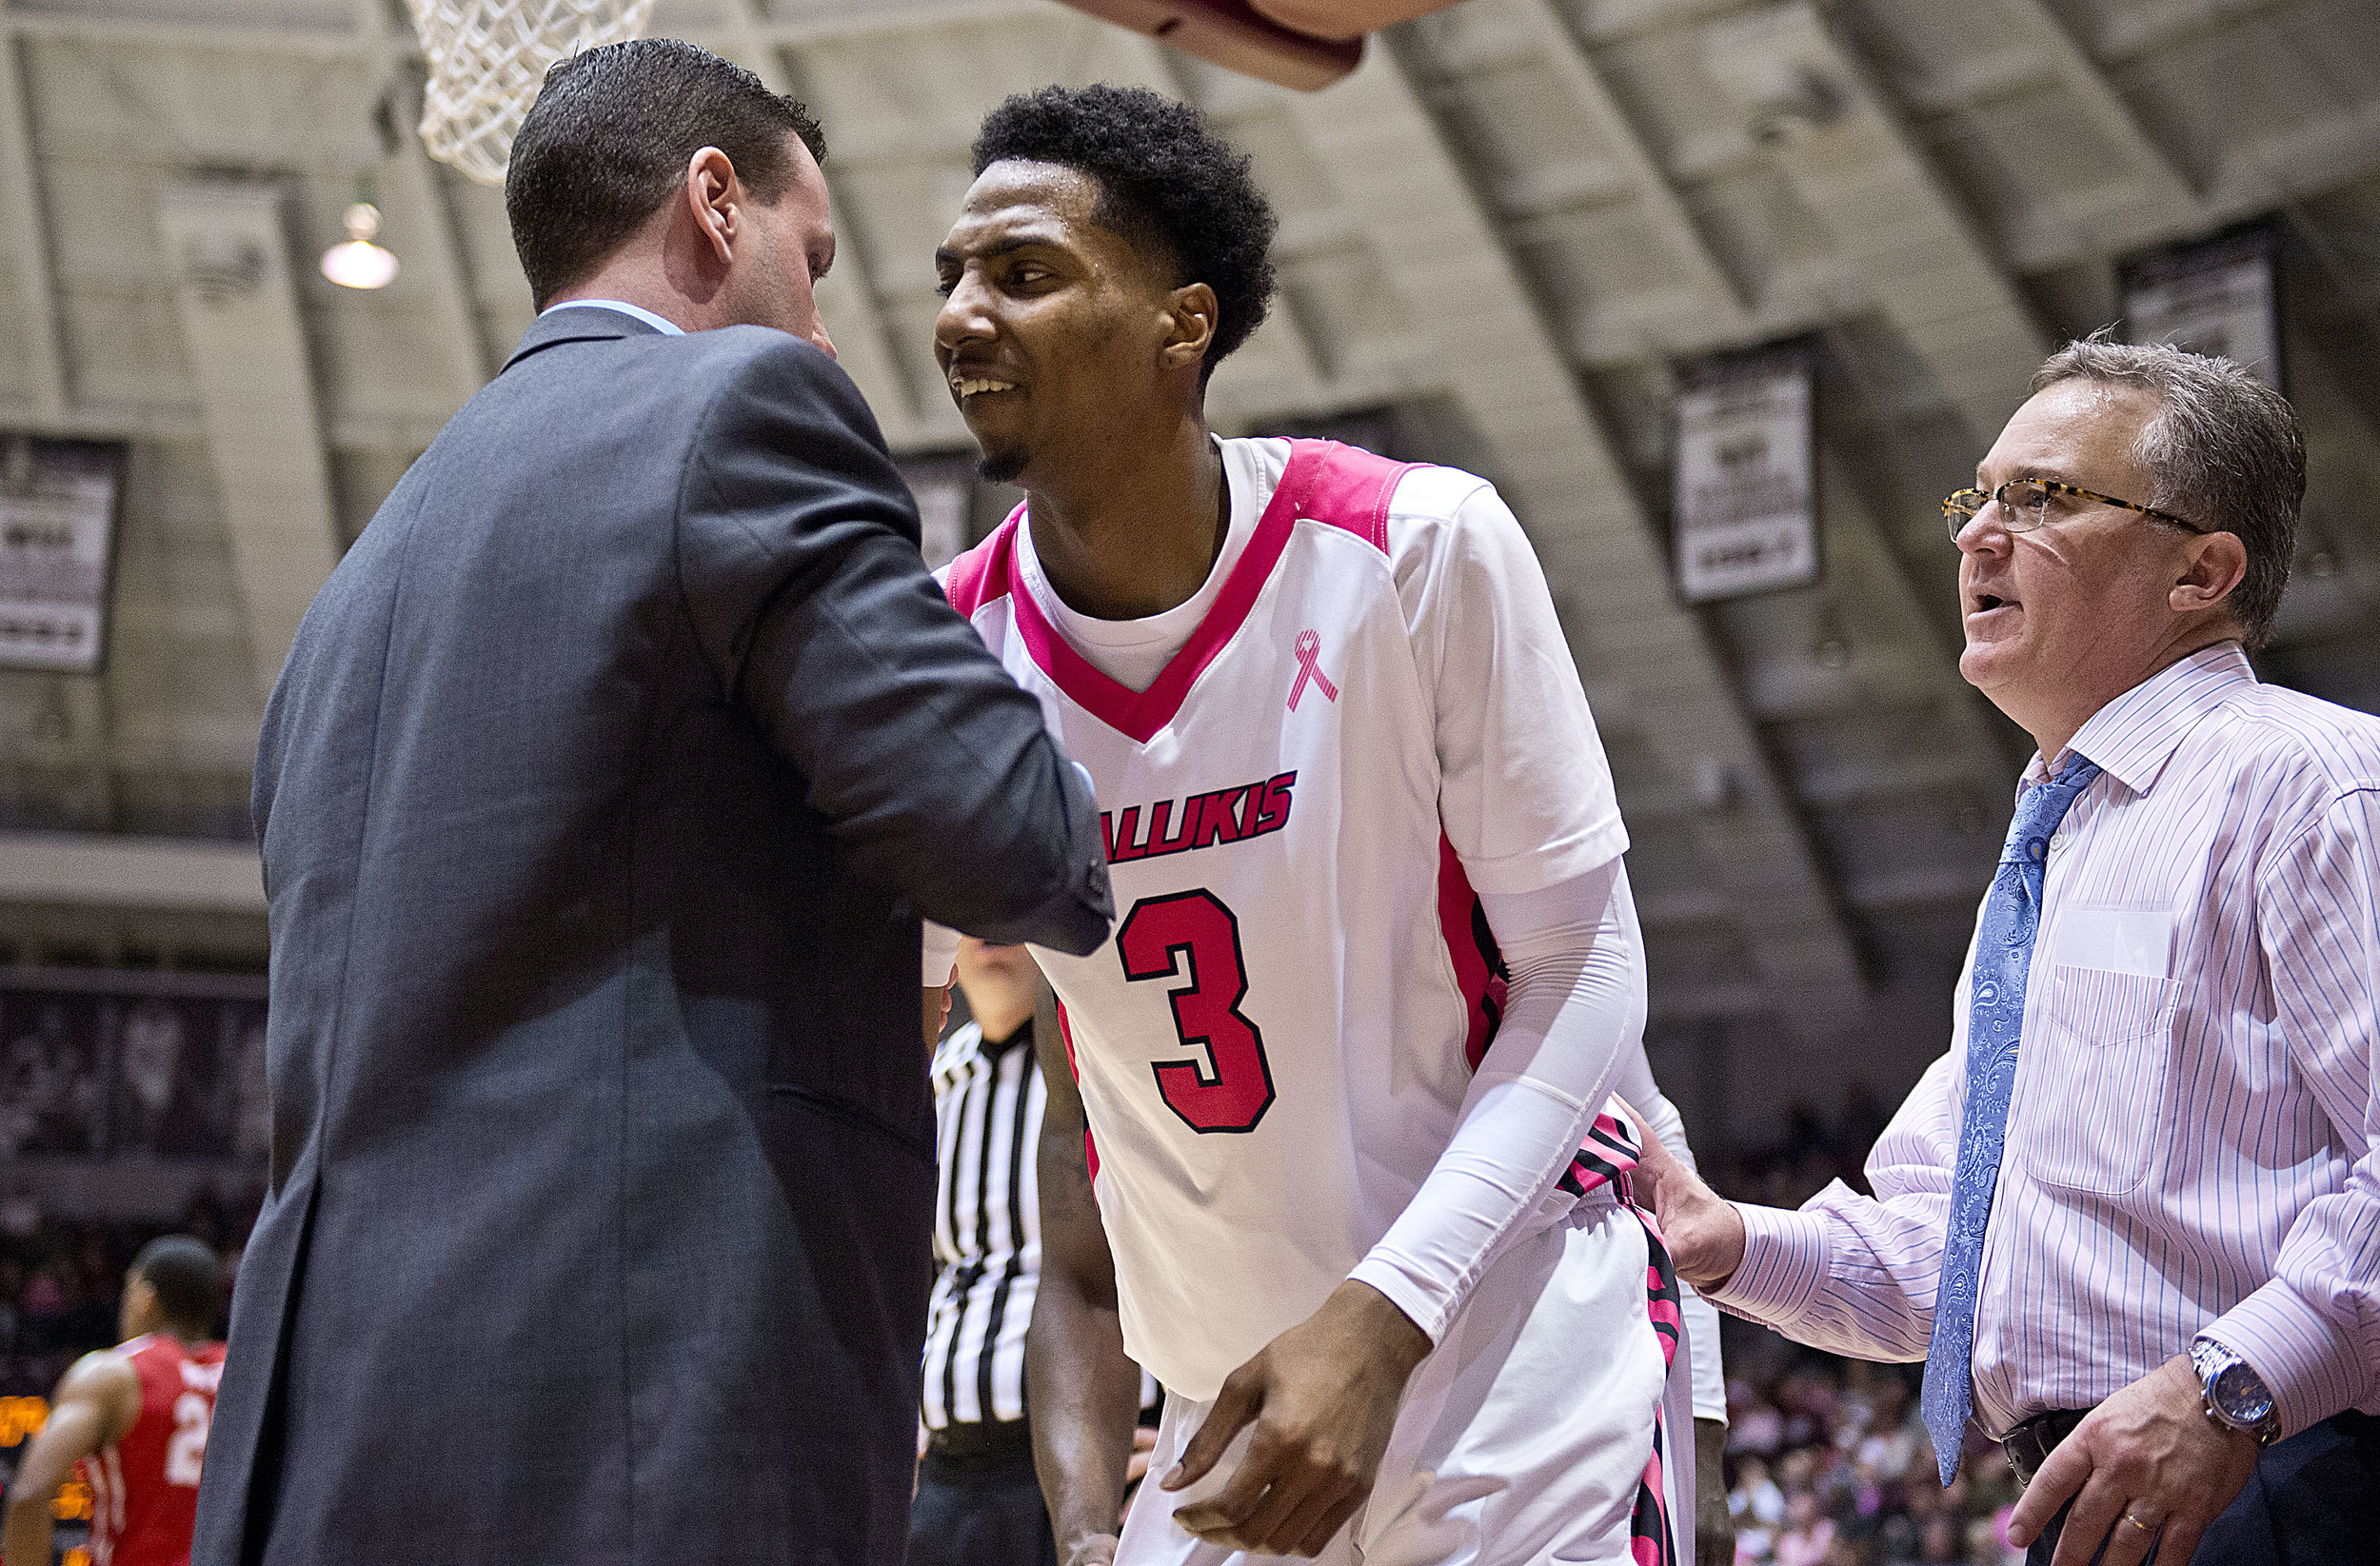 Salukis guard Desmar Jackson is helped up after getting fouled.